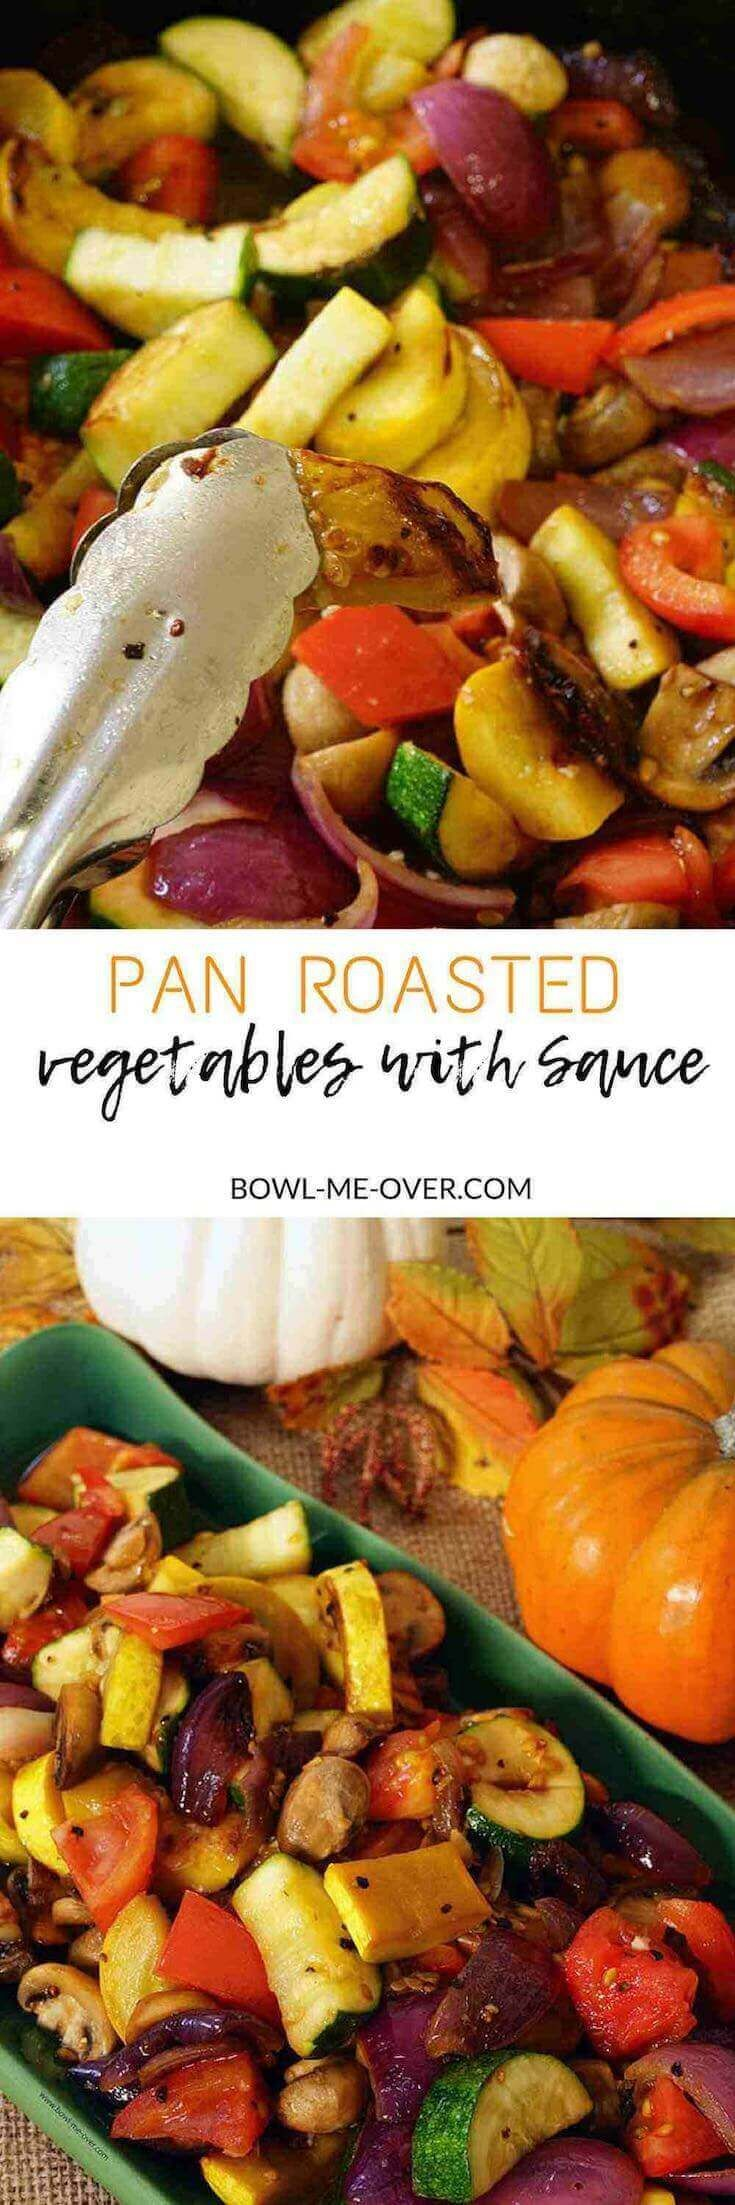 Need a delicious side dish NOT cooked in the oven? Pan Roasted Vegetables are lightly sautéed in butter and olive oil until caramelized and sweet. Adding tomatoes at the end makes a delicate light sauce!